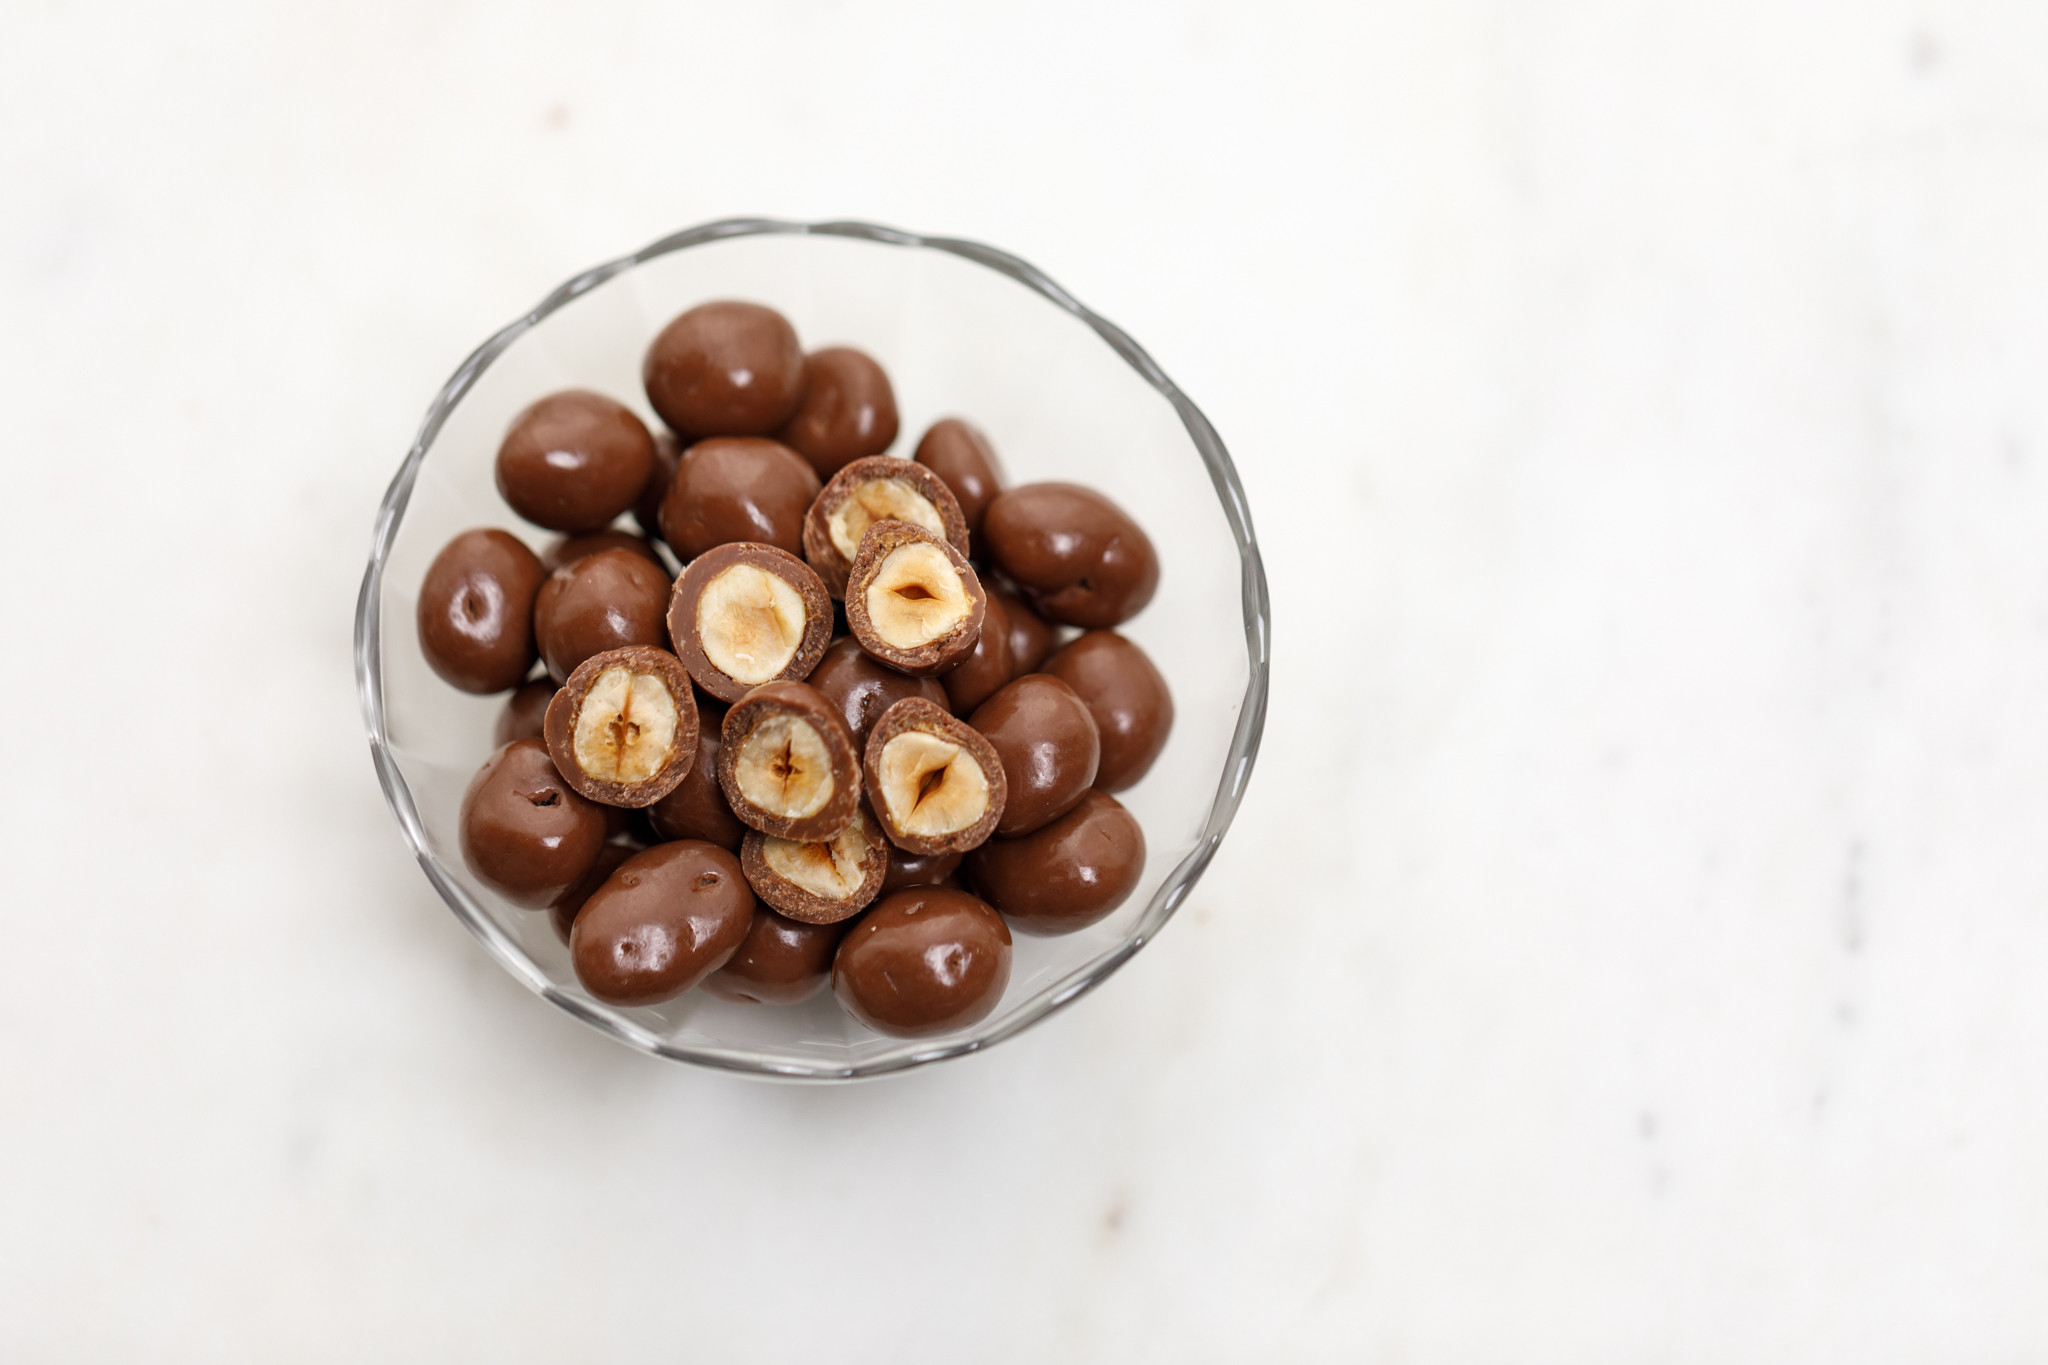 Milk Chocolate Caramelized Hazelnut Drops